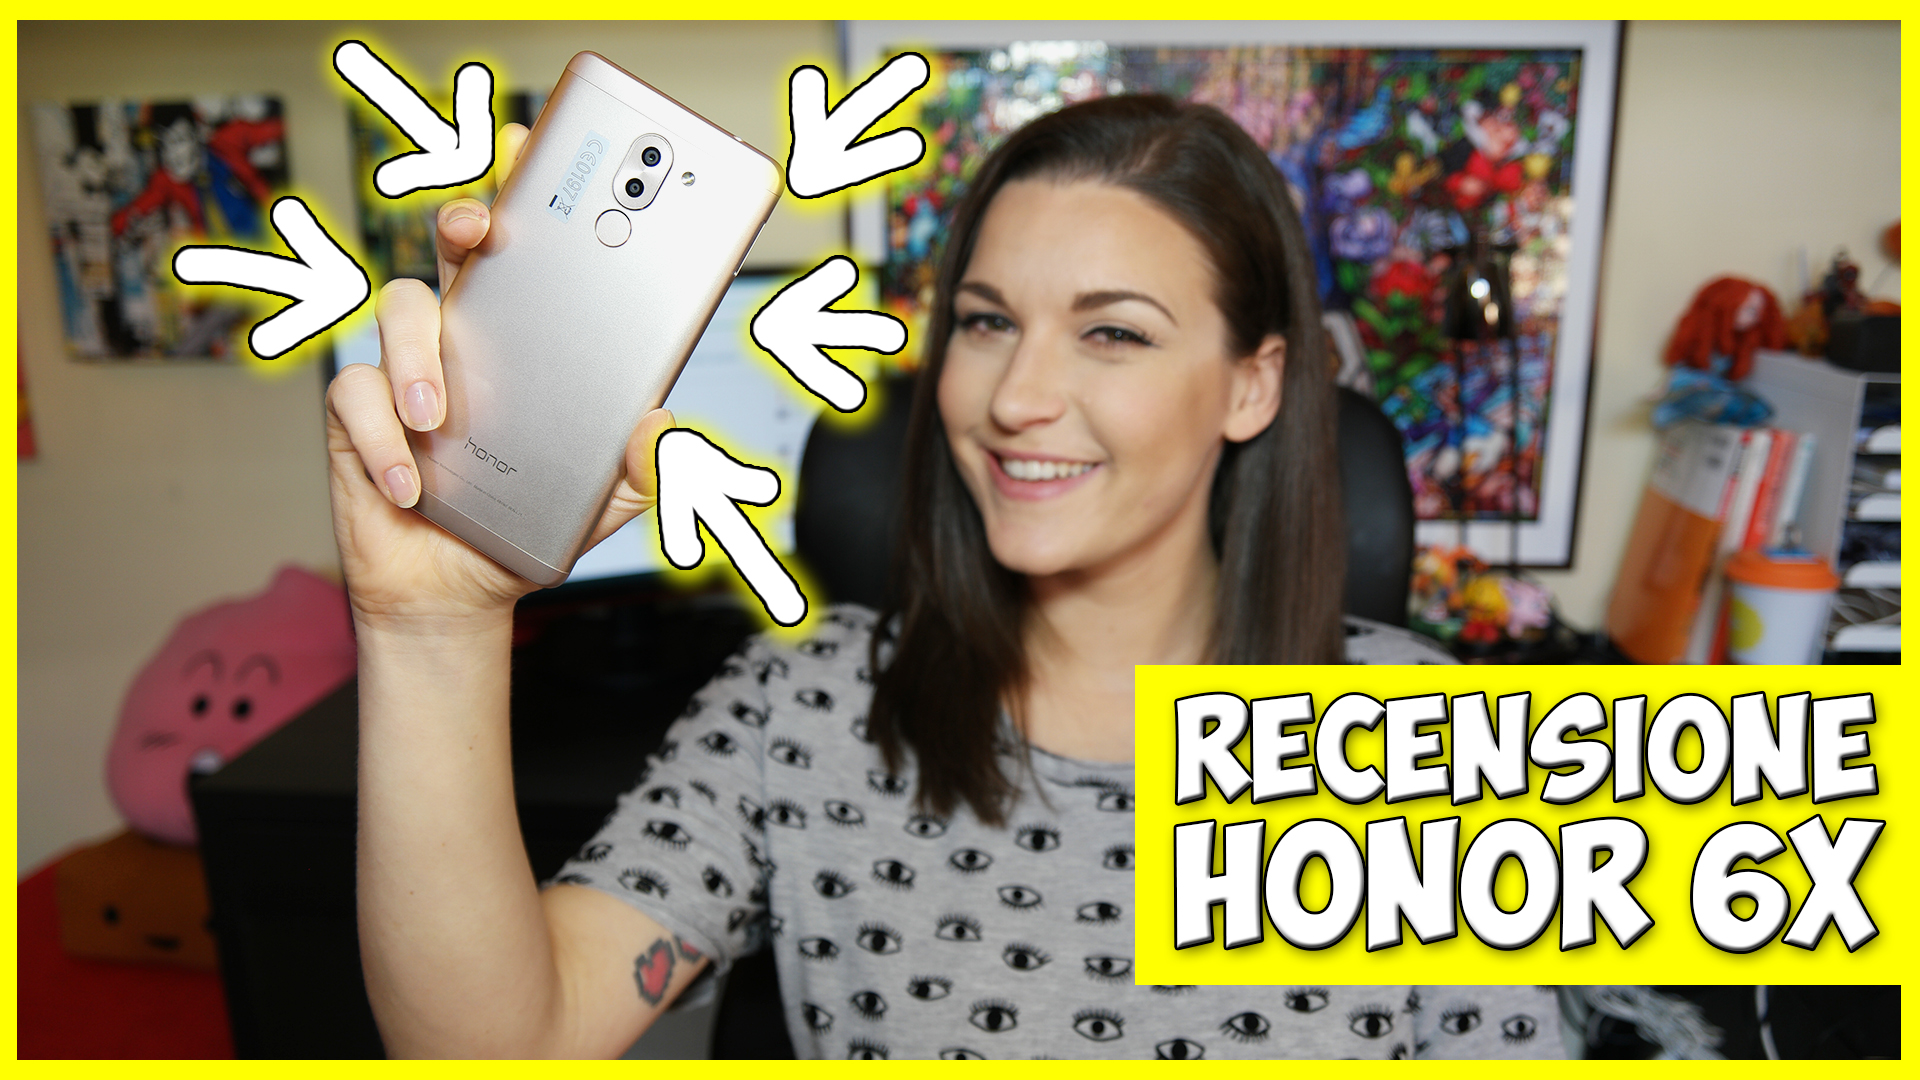 [Recensione] Honor 6X, lo smartphone low cost con i super poteri thumbnail